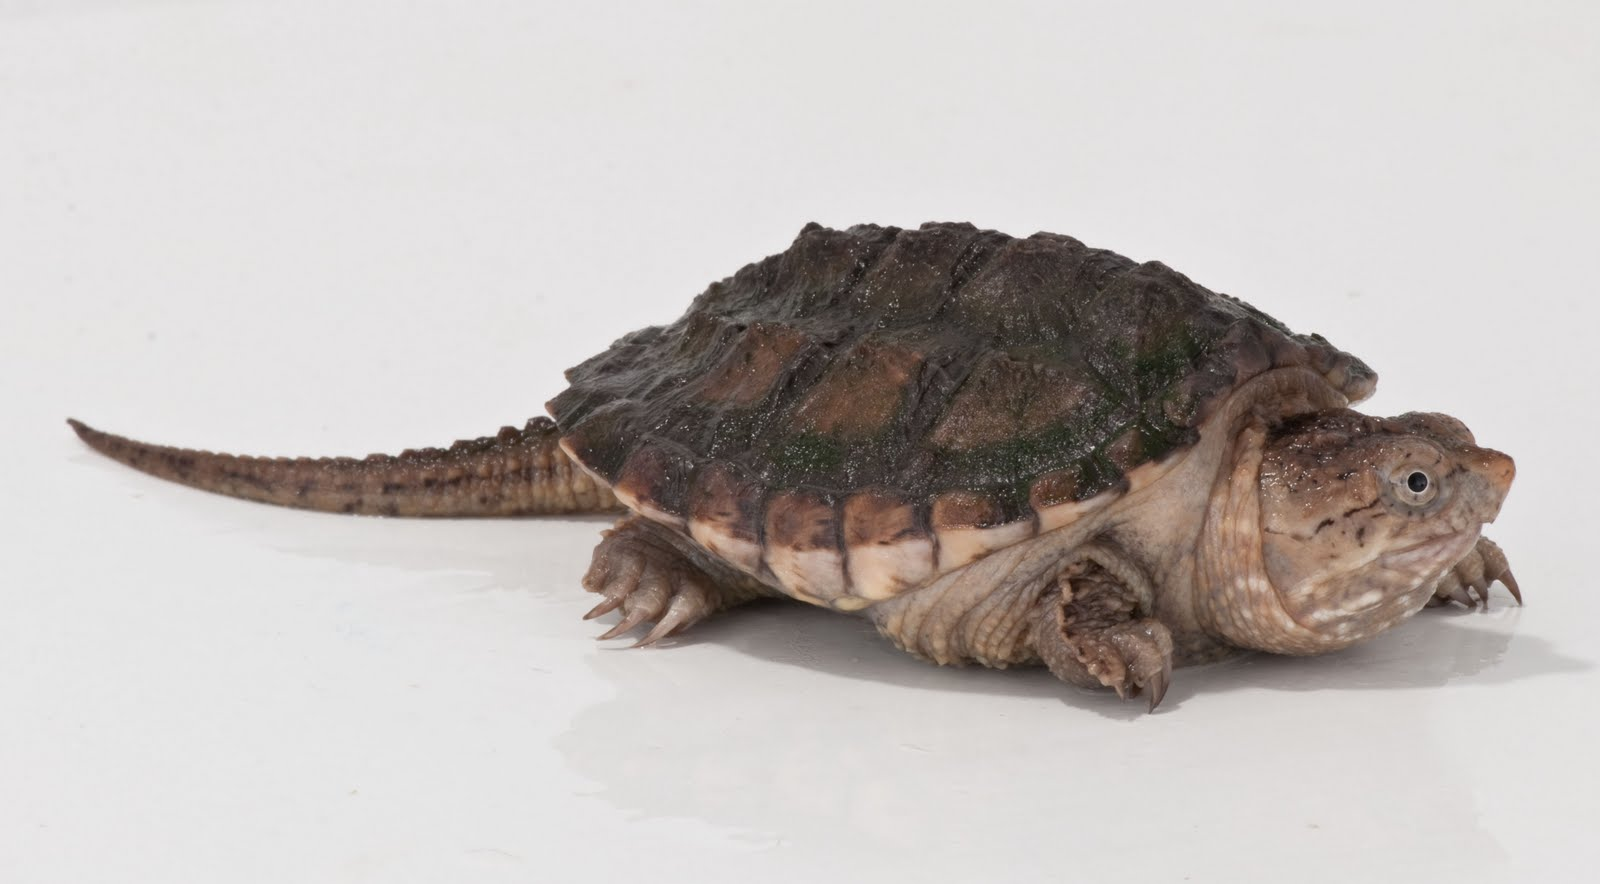 Biology of the Reptilia: Reptiles lab 2 - Turtles (Thompson & Serna)